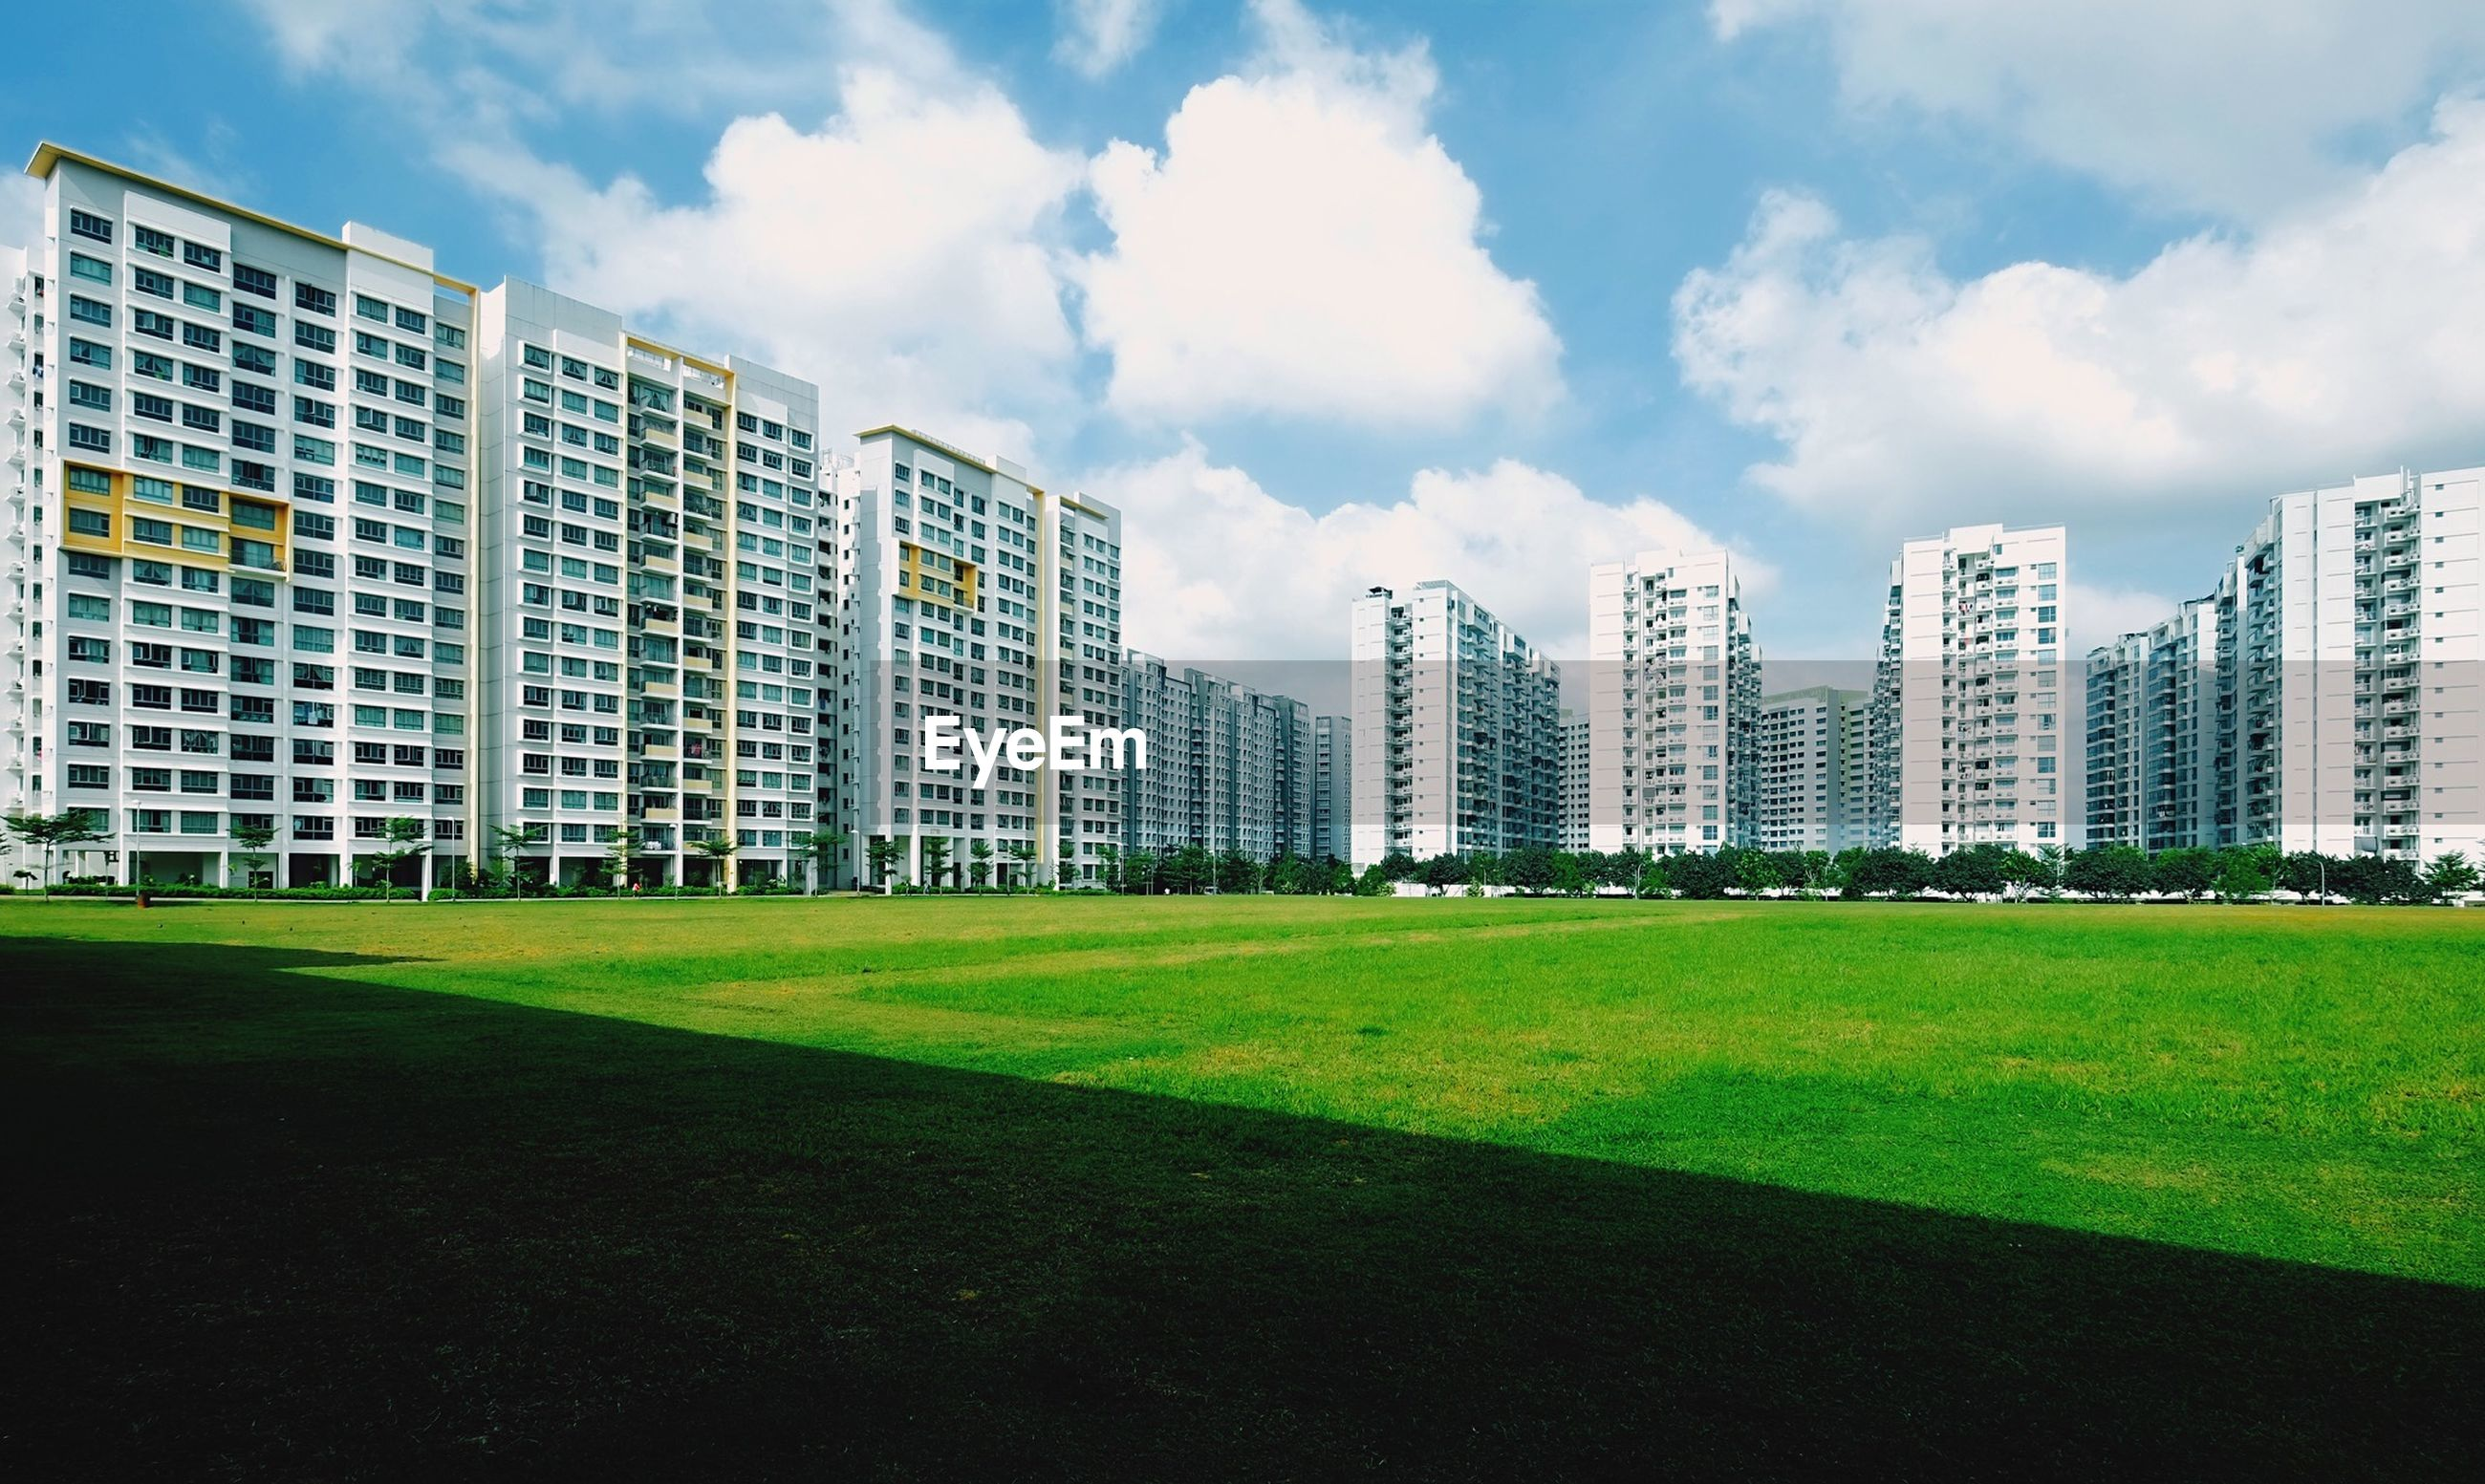 building exterior, grass, architecture, built structure, sky, city, cloud - sky, lawn, green color, cloud, modern, office building, skyscraper, building, cloudy, day, grassy, outdoors, tree, residential building